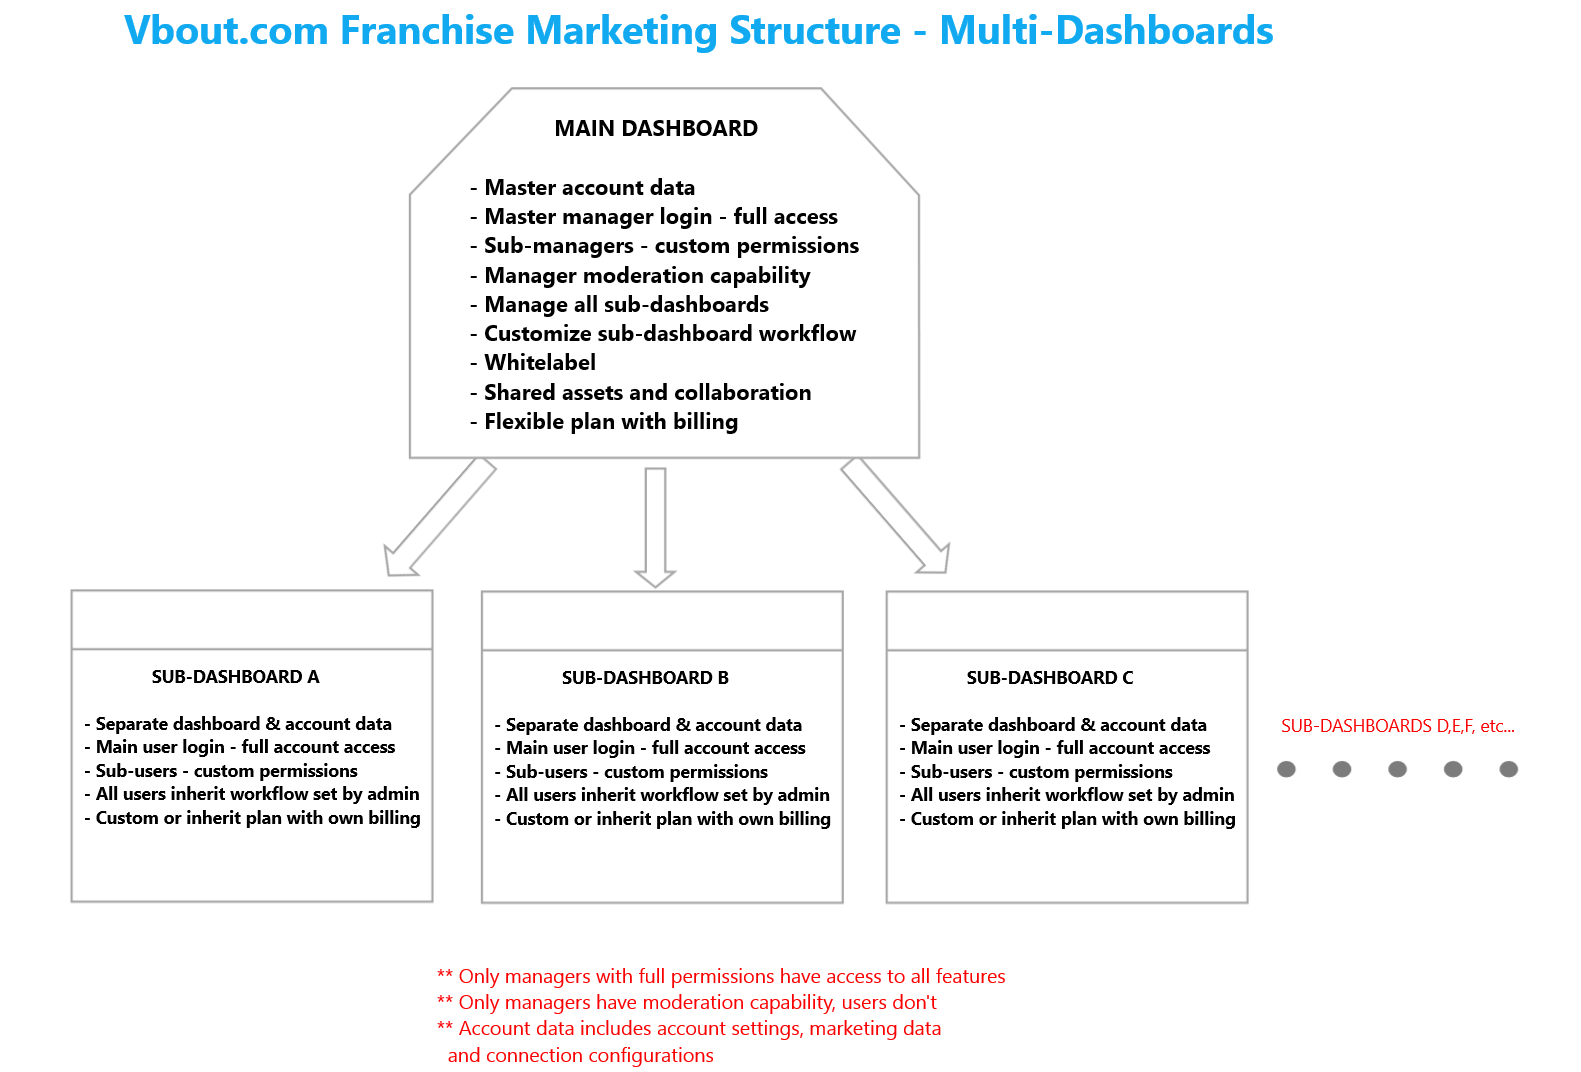 multi-dashboard-structure-vbout